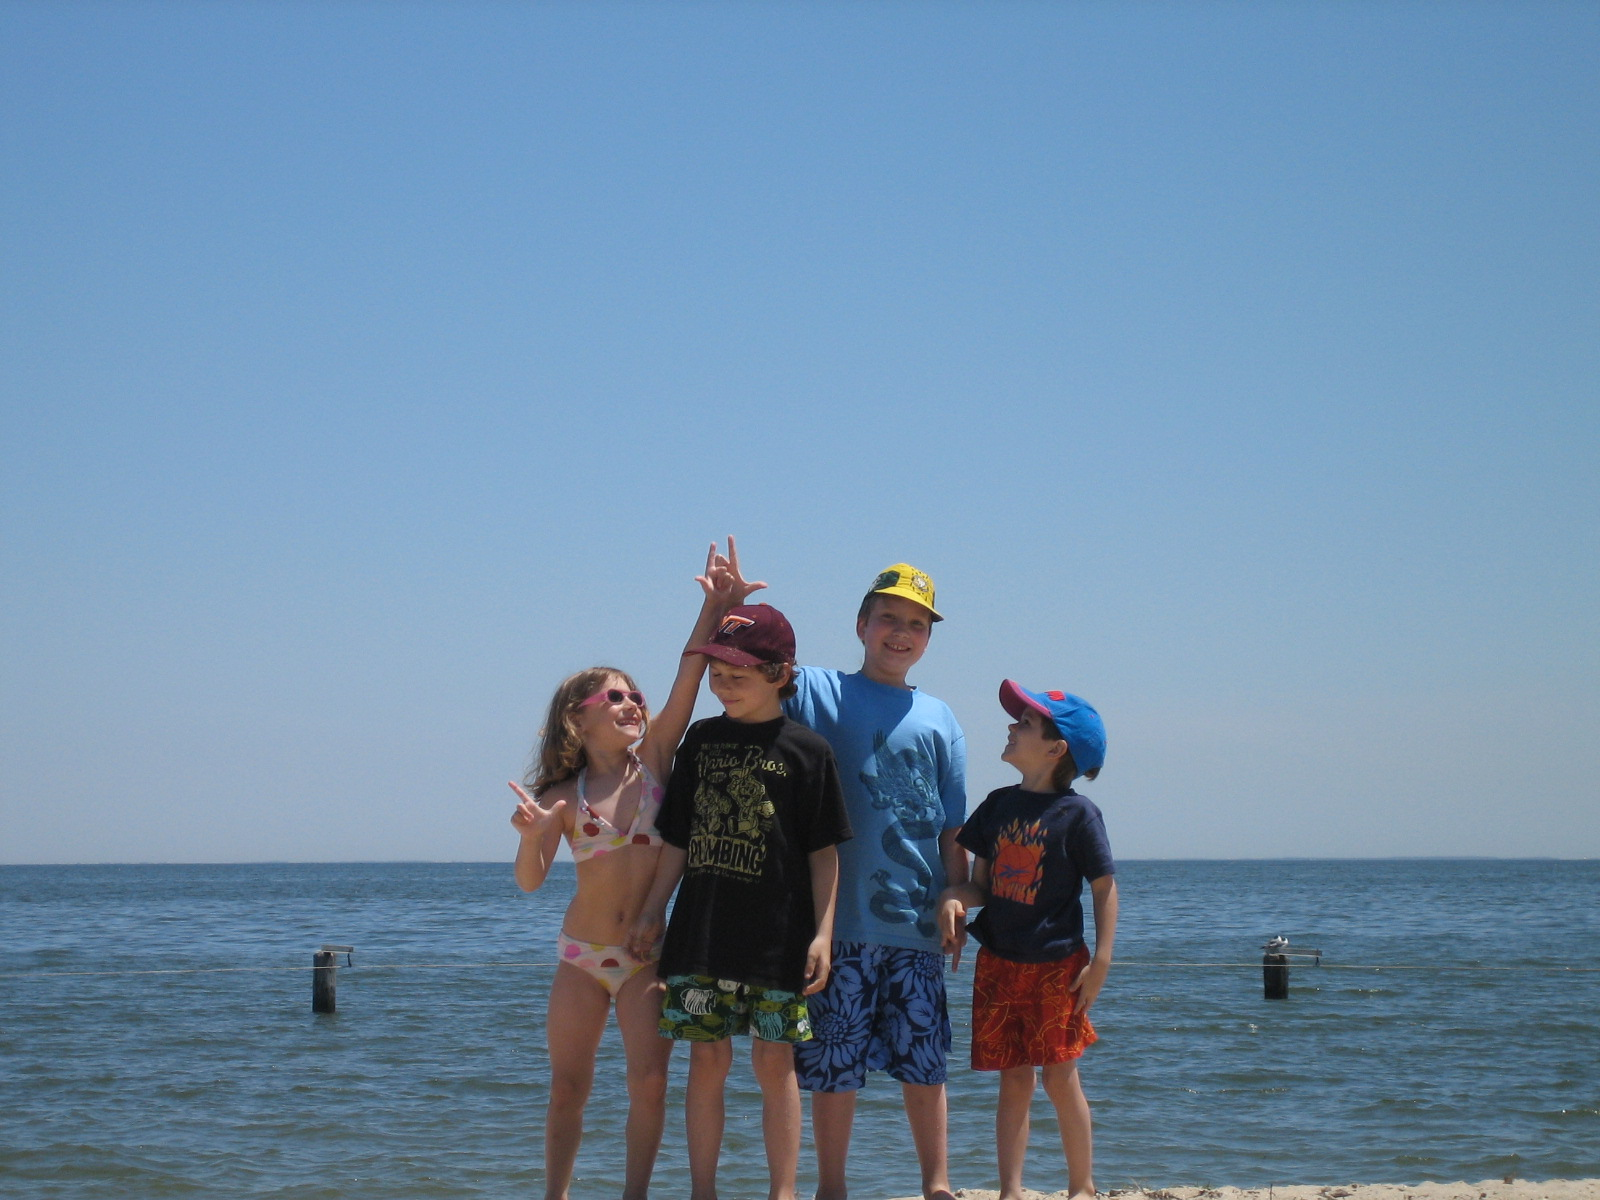 Shark Tooth Hunting at Breezy Point Beach